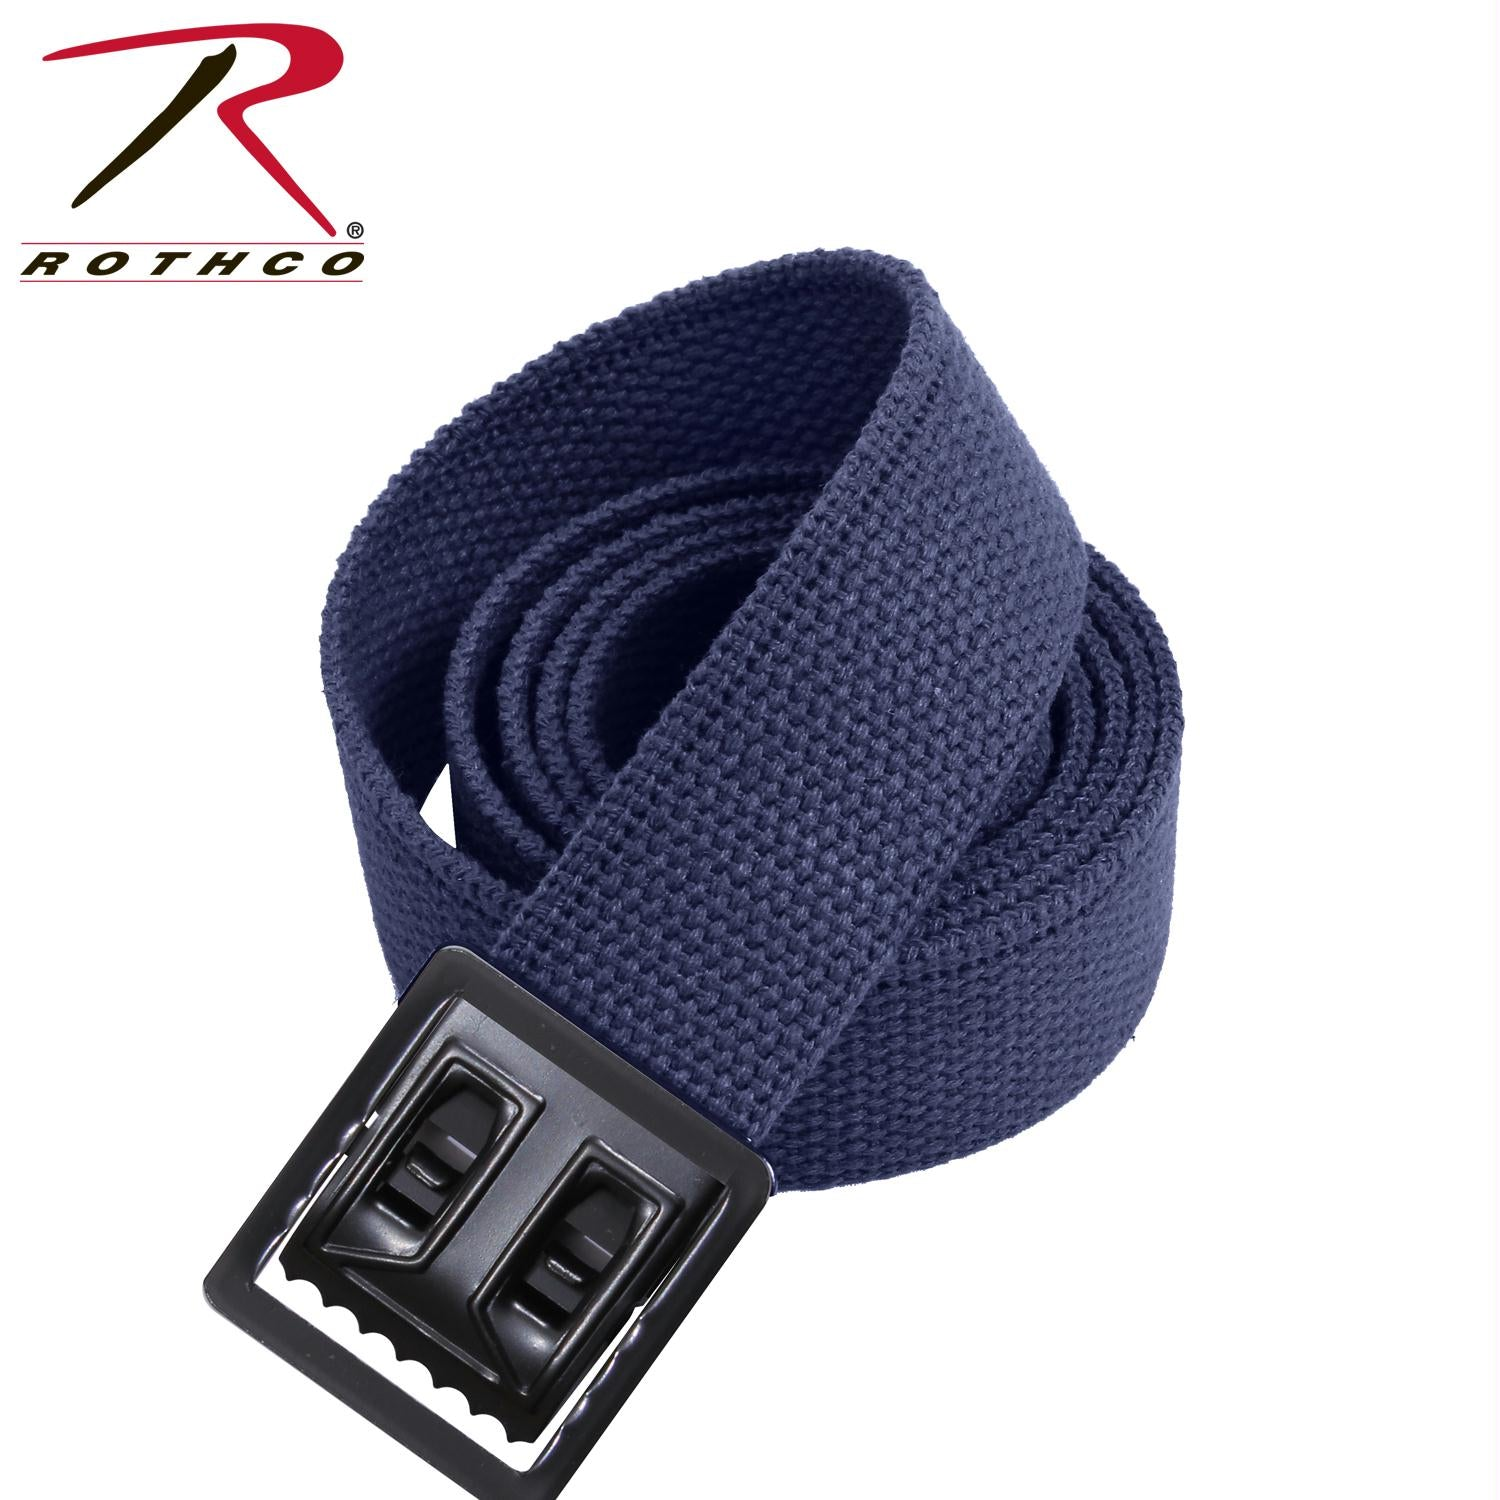 Rothco Military Web Belts w/ Open Face Buckle - Black / Navy Blue / 44 Inches